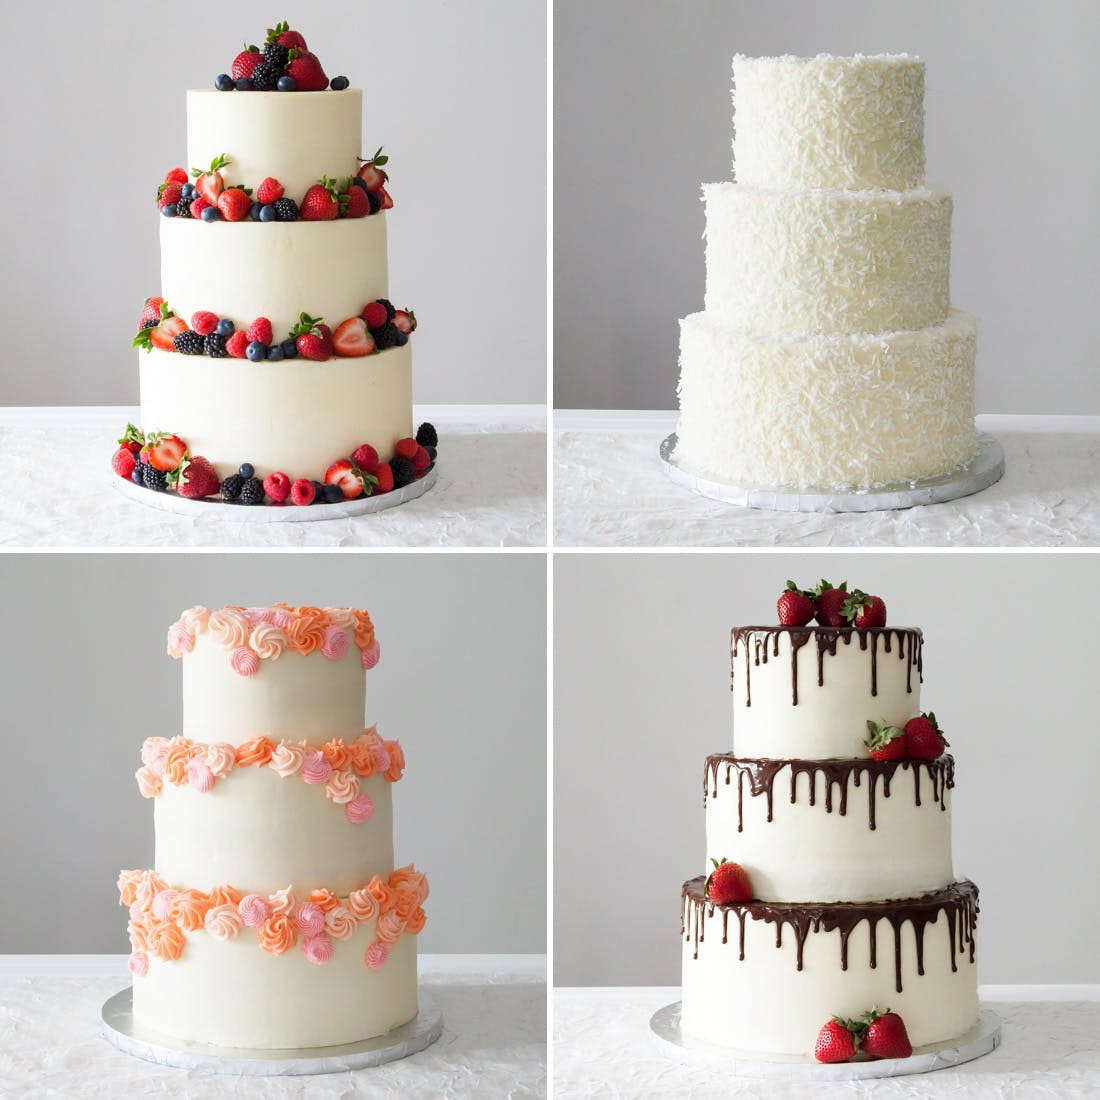 Best ideas about DIY Wedding Cake . Save or Pin 4 Easy Ways to DIY a Wedding Cake Now.